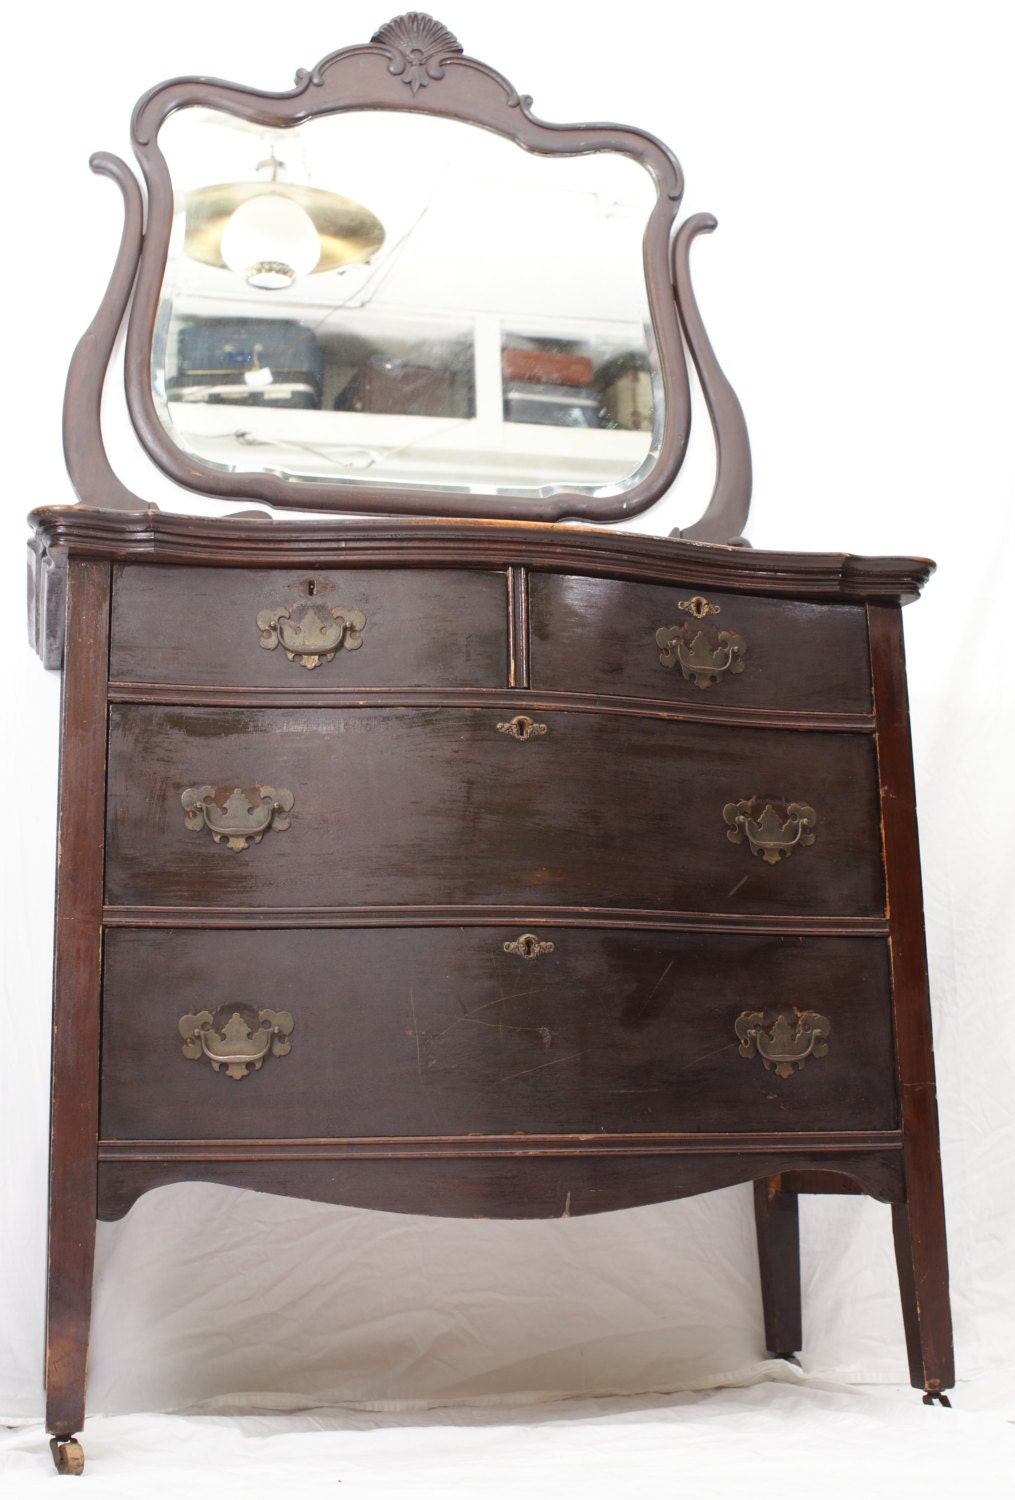 Antique Slipper Chair Antique Dark Dresser Chest with Mirror